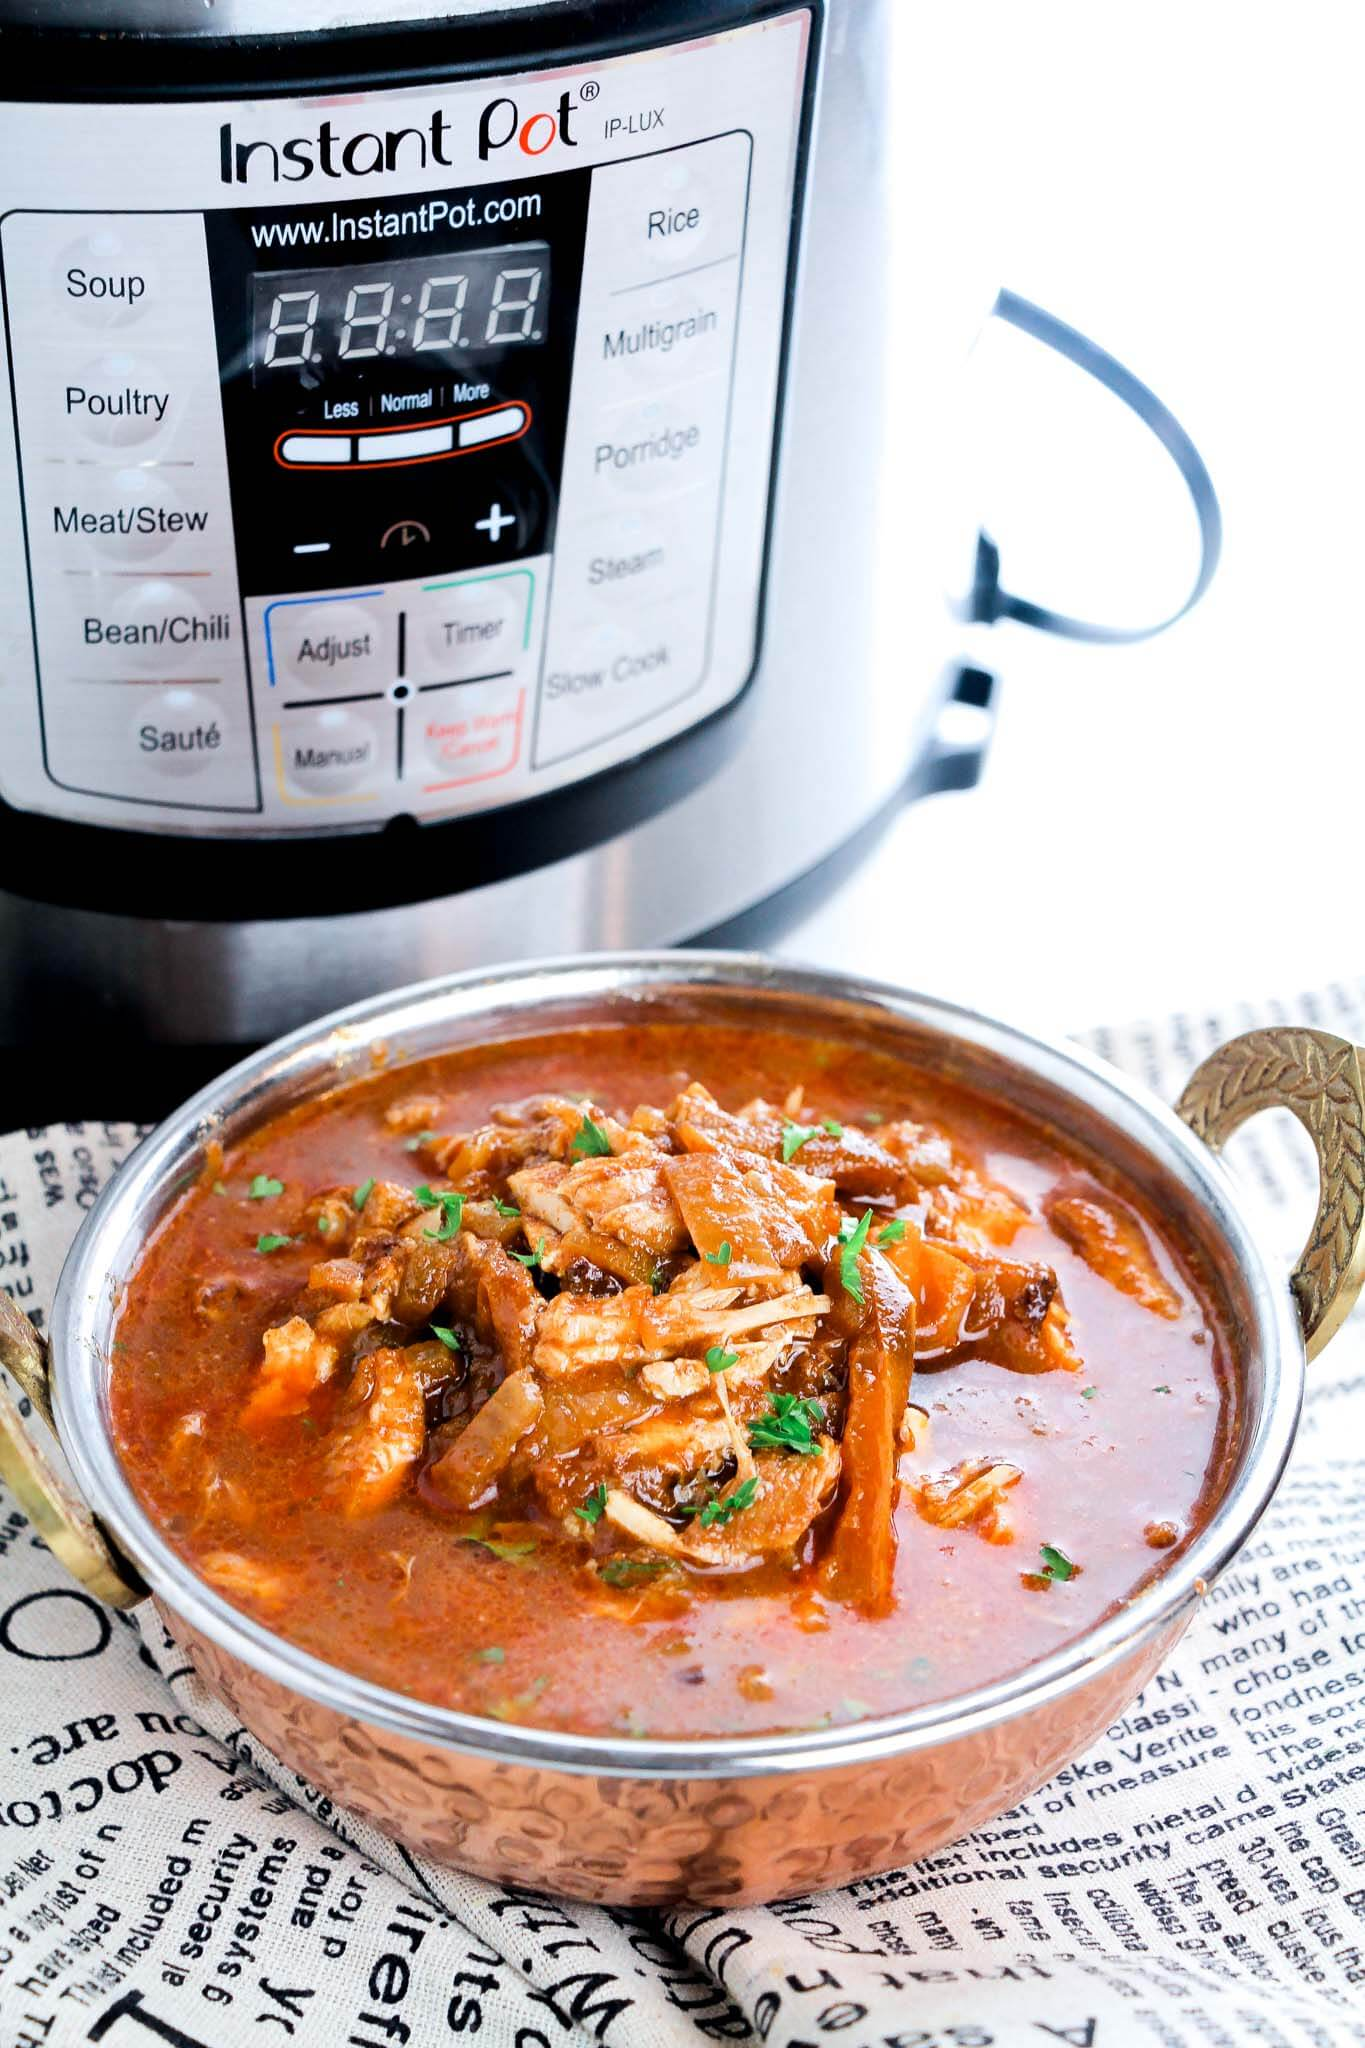 If you're craving for something rich & hearty, these delicious instant pot stews should be in your meal plan all year round! They're the best comfort food!